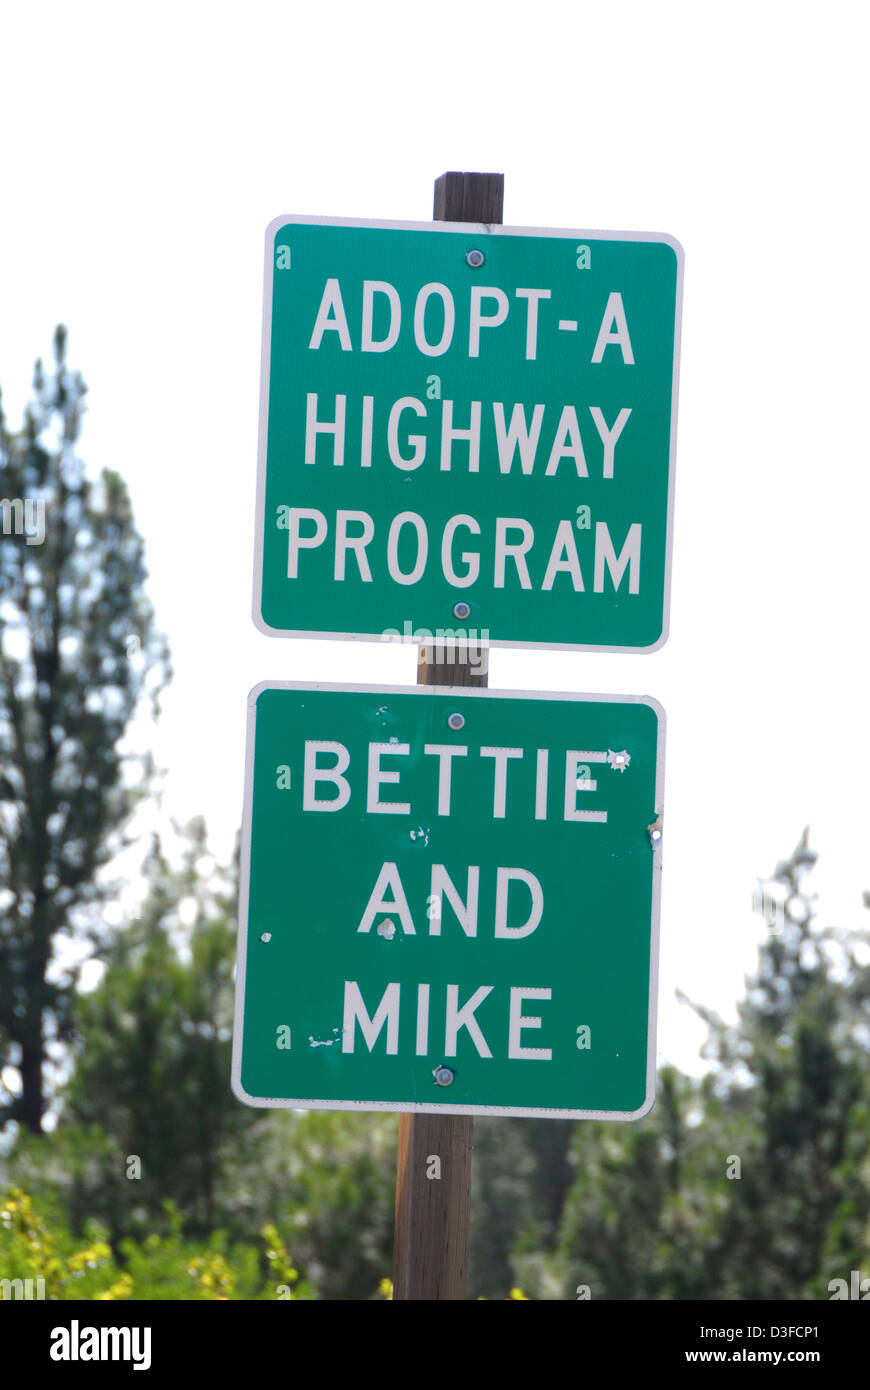 Adapt-A Highway sign along a highway in Eastern Oregon. - Stock Image